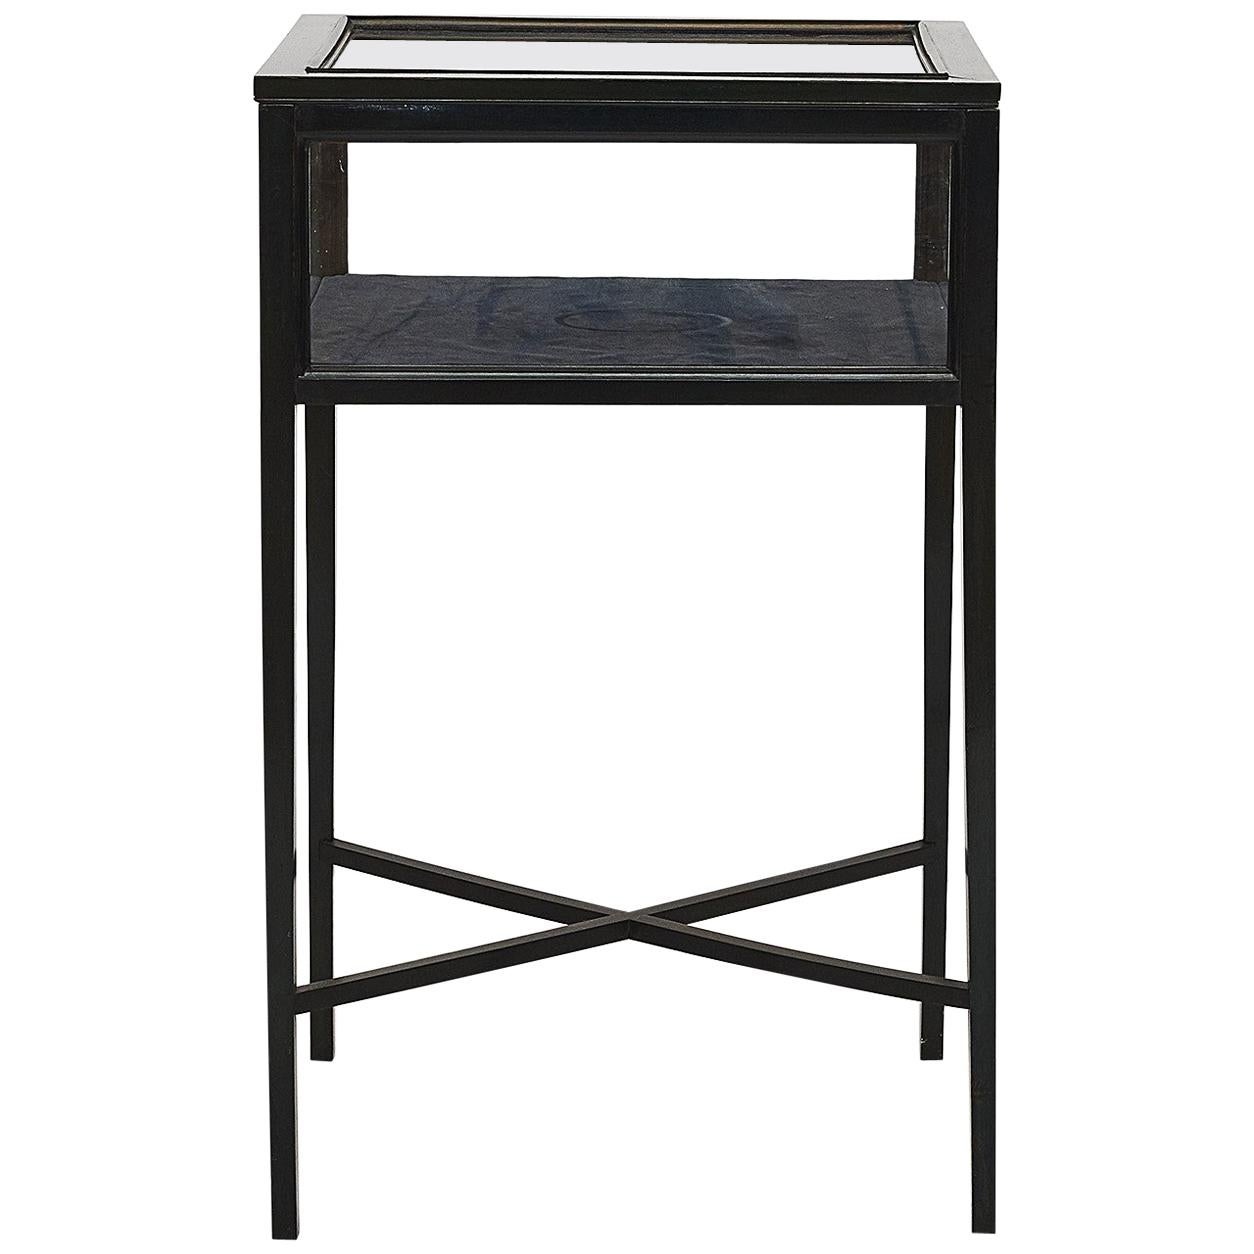 Small Empire Style Display Case Table